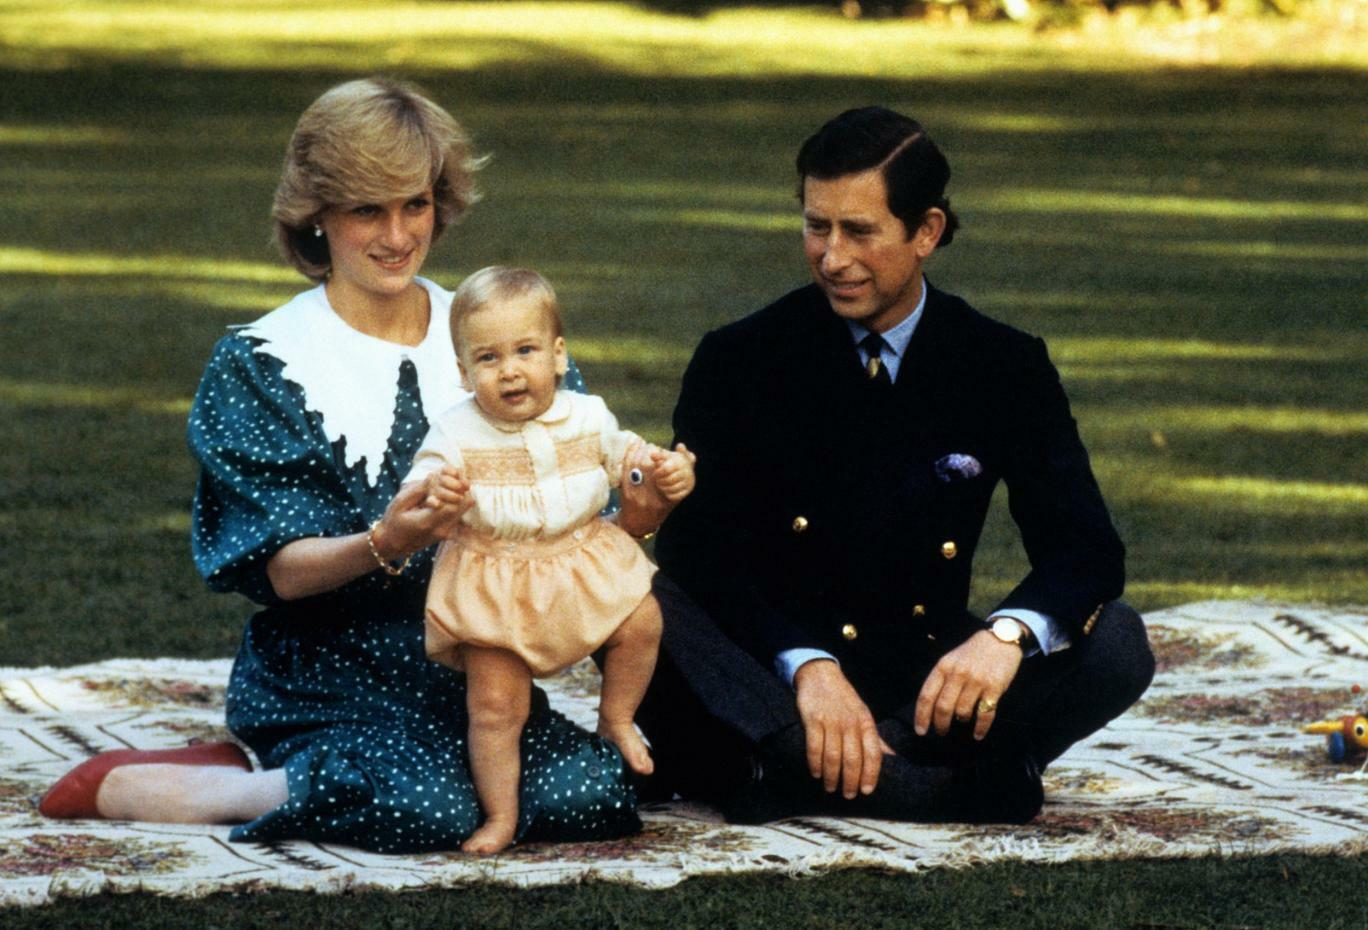 Diana and Charles enjoy a family day out.